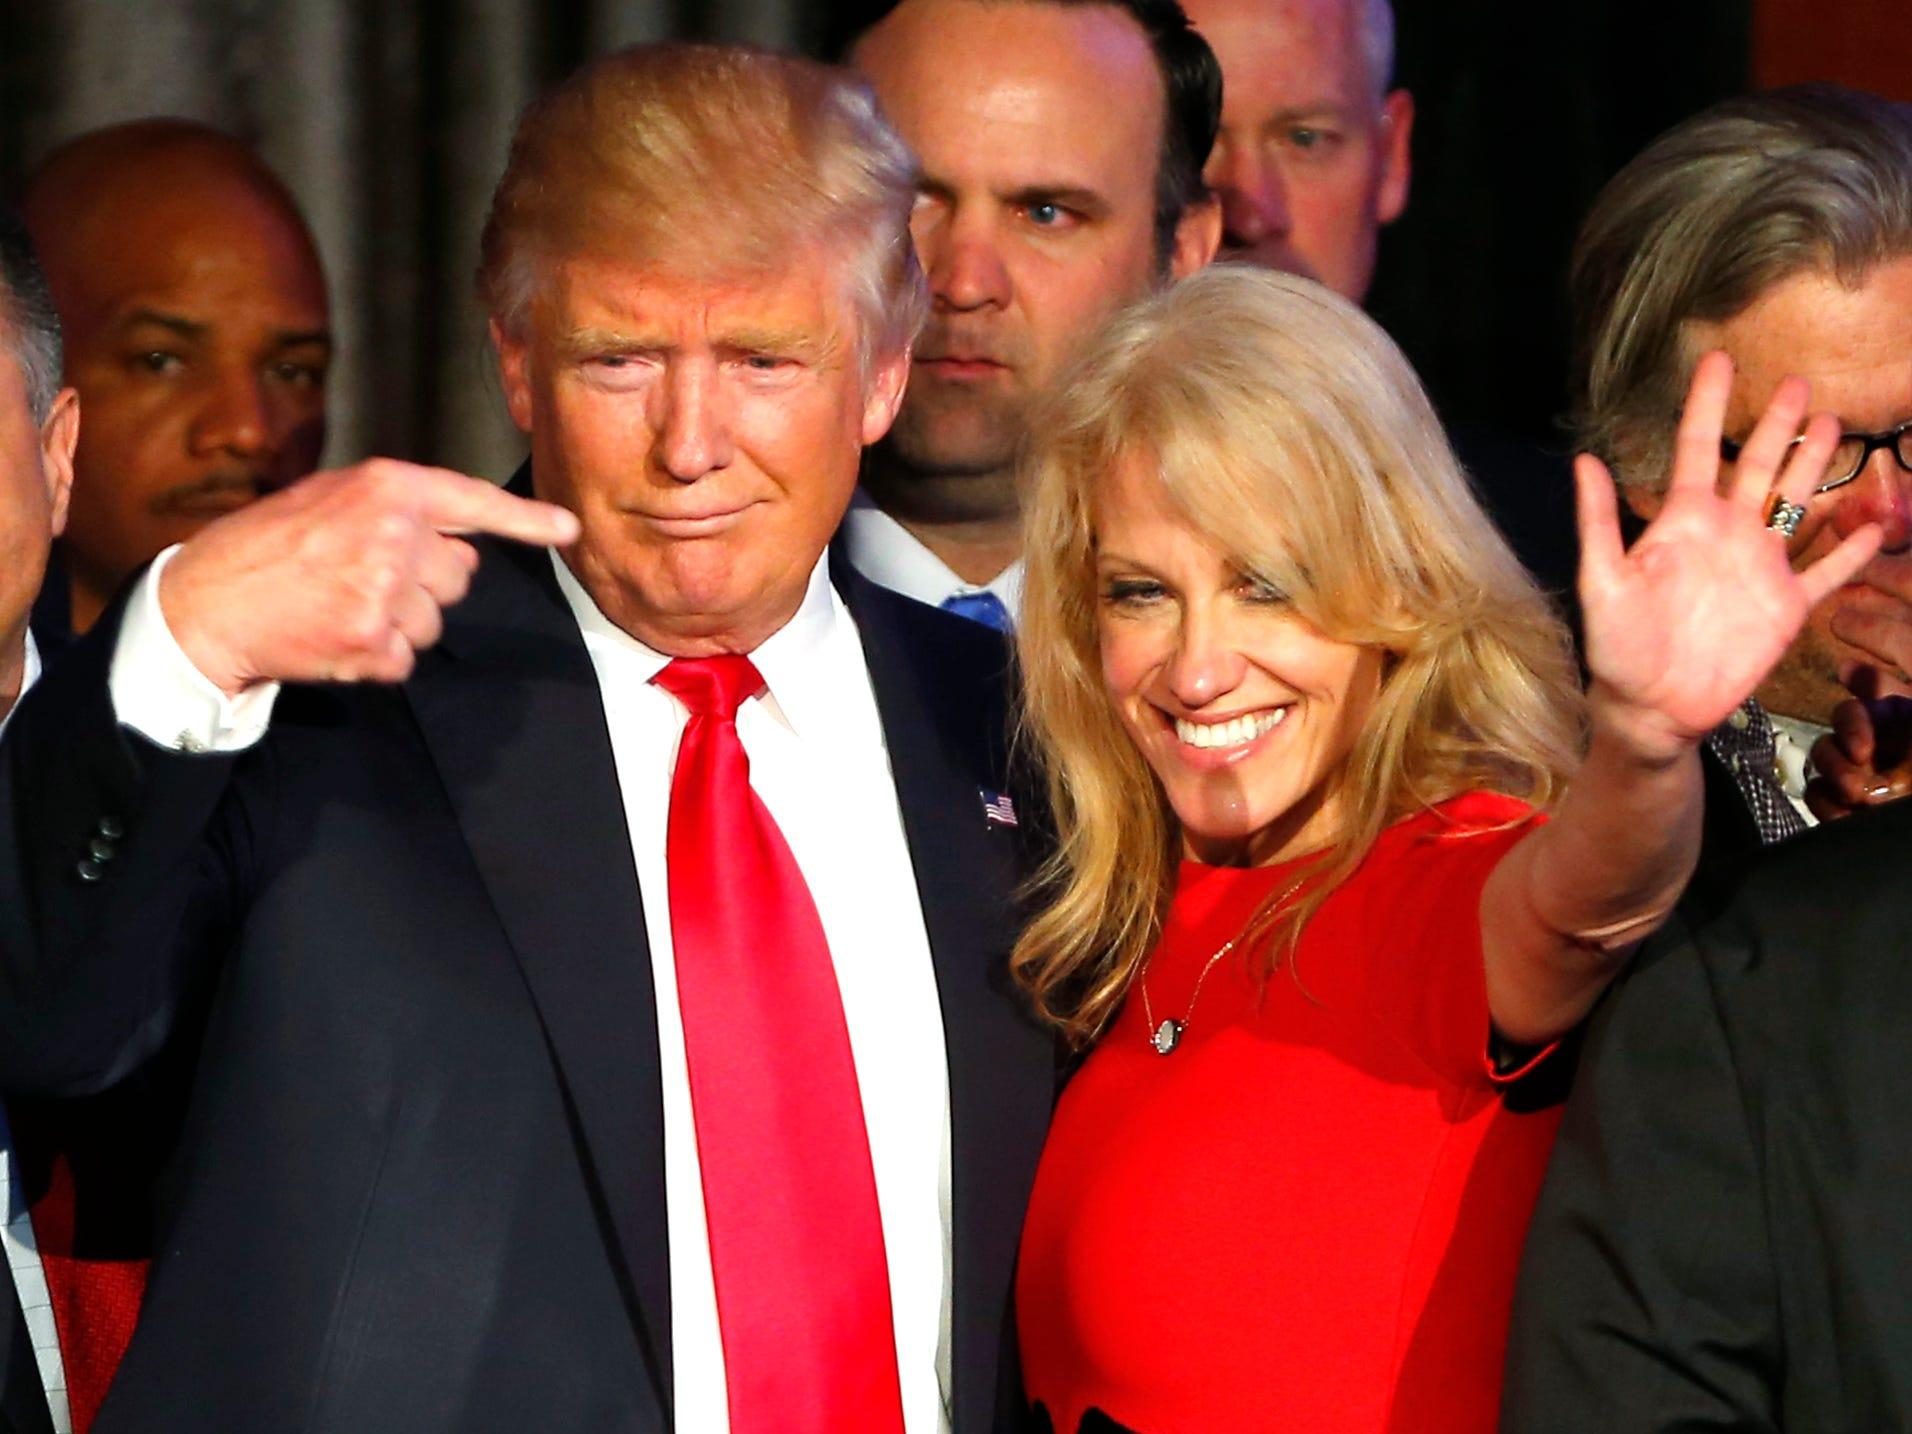 Kellyanne Conway told Trump that he didn't have 'swagger' in 2020 and said his campaign resembled Hillary Clinton's 2016 bid: book